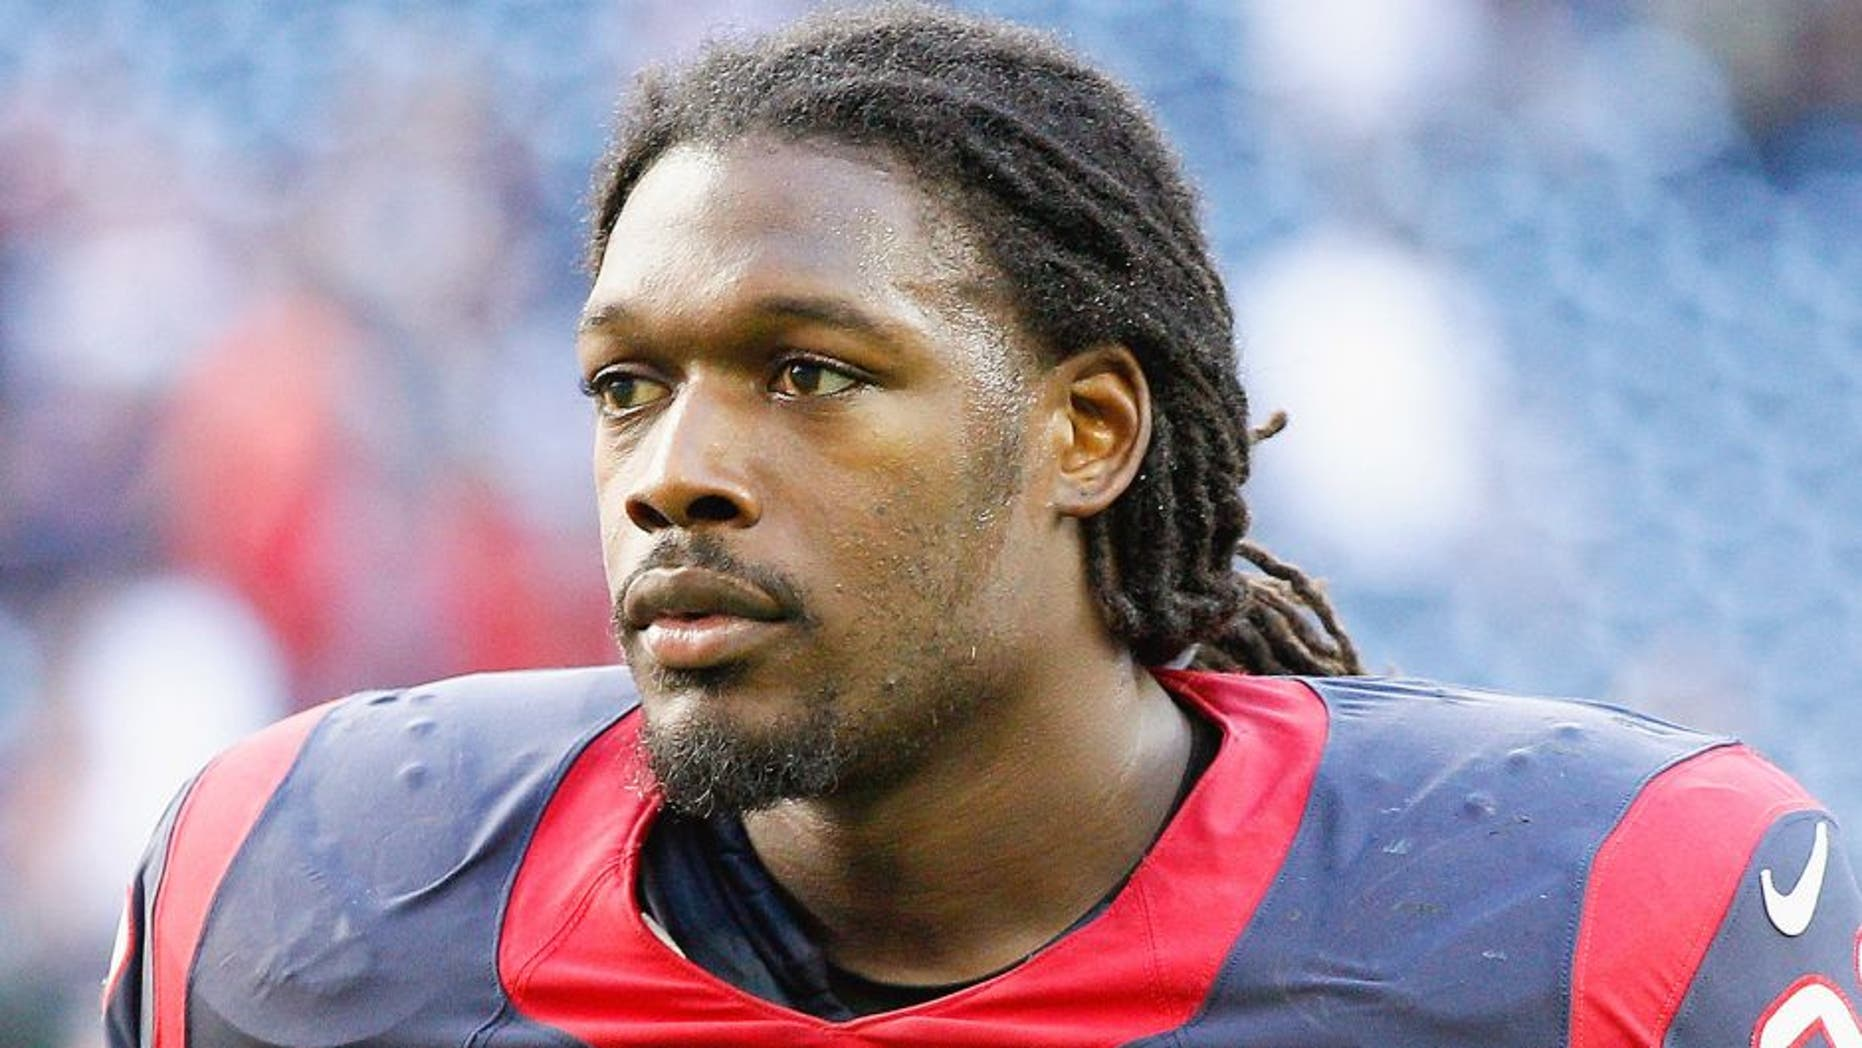 HOUSTON, TX - NOVEMBER 23: Jadeveon Clowney #90 of the Houston Texans leaves the field after 22-13 loss to the Cincinnati Bengals at NRG Stadium on November 23, 2014 in Houston, Texas. (Photo by Bob Levey/Getty Images)